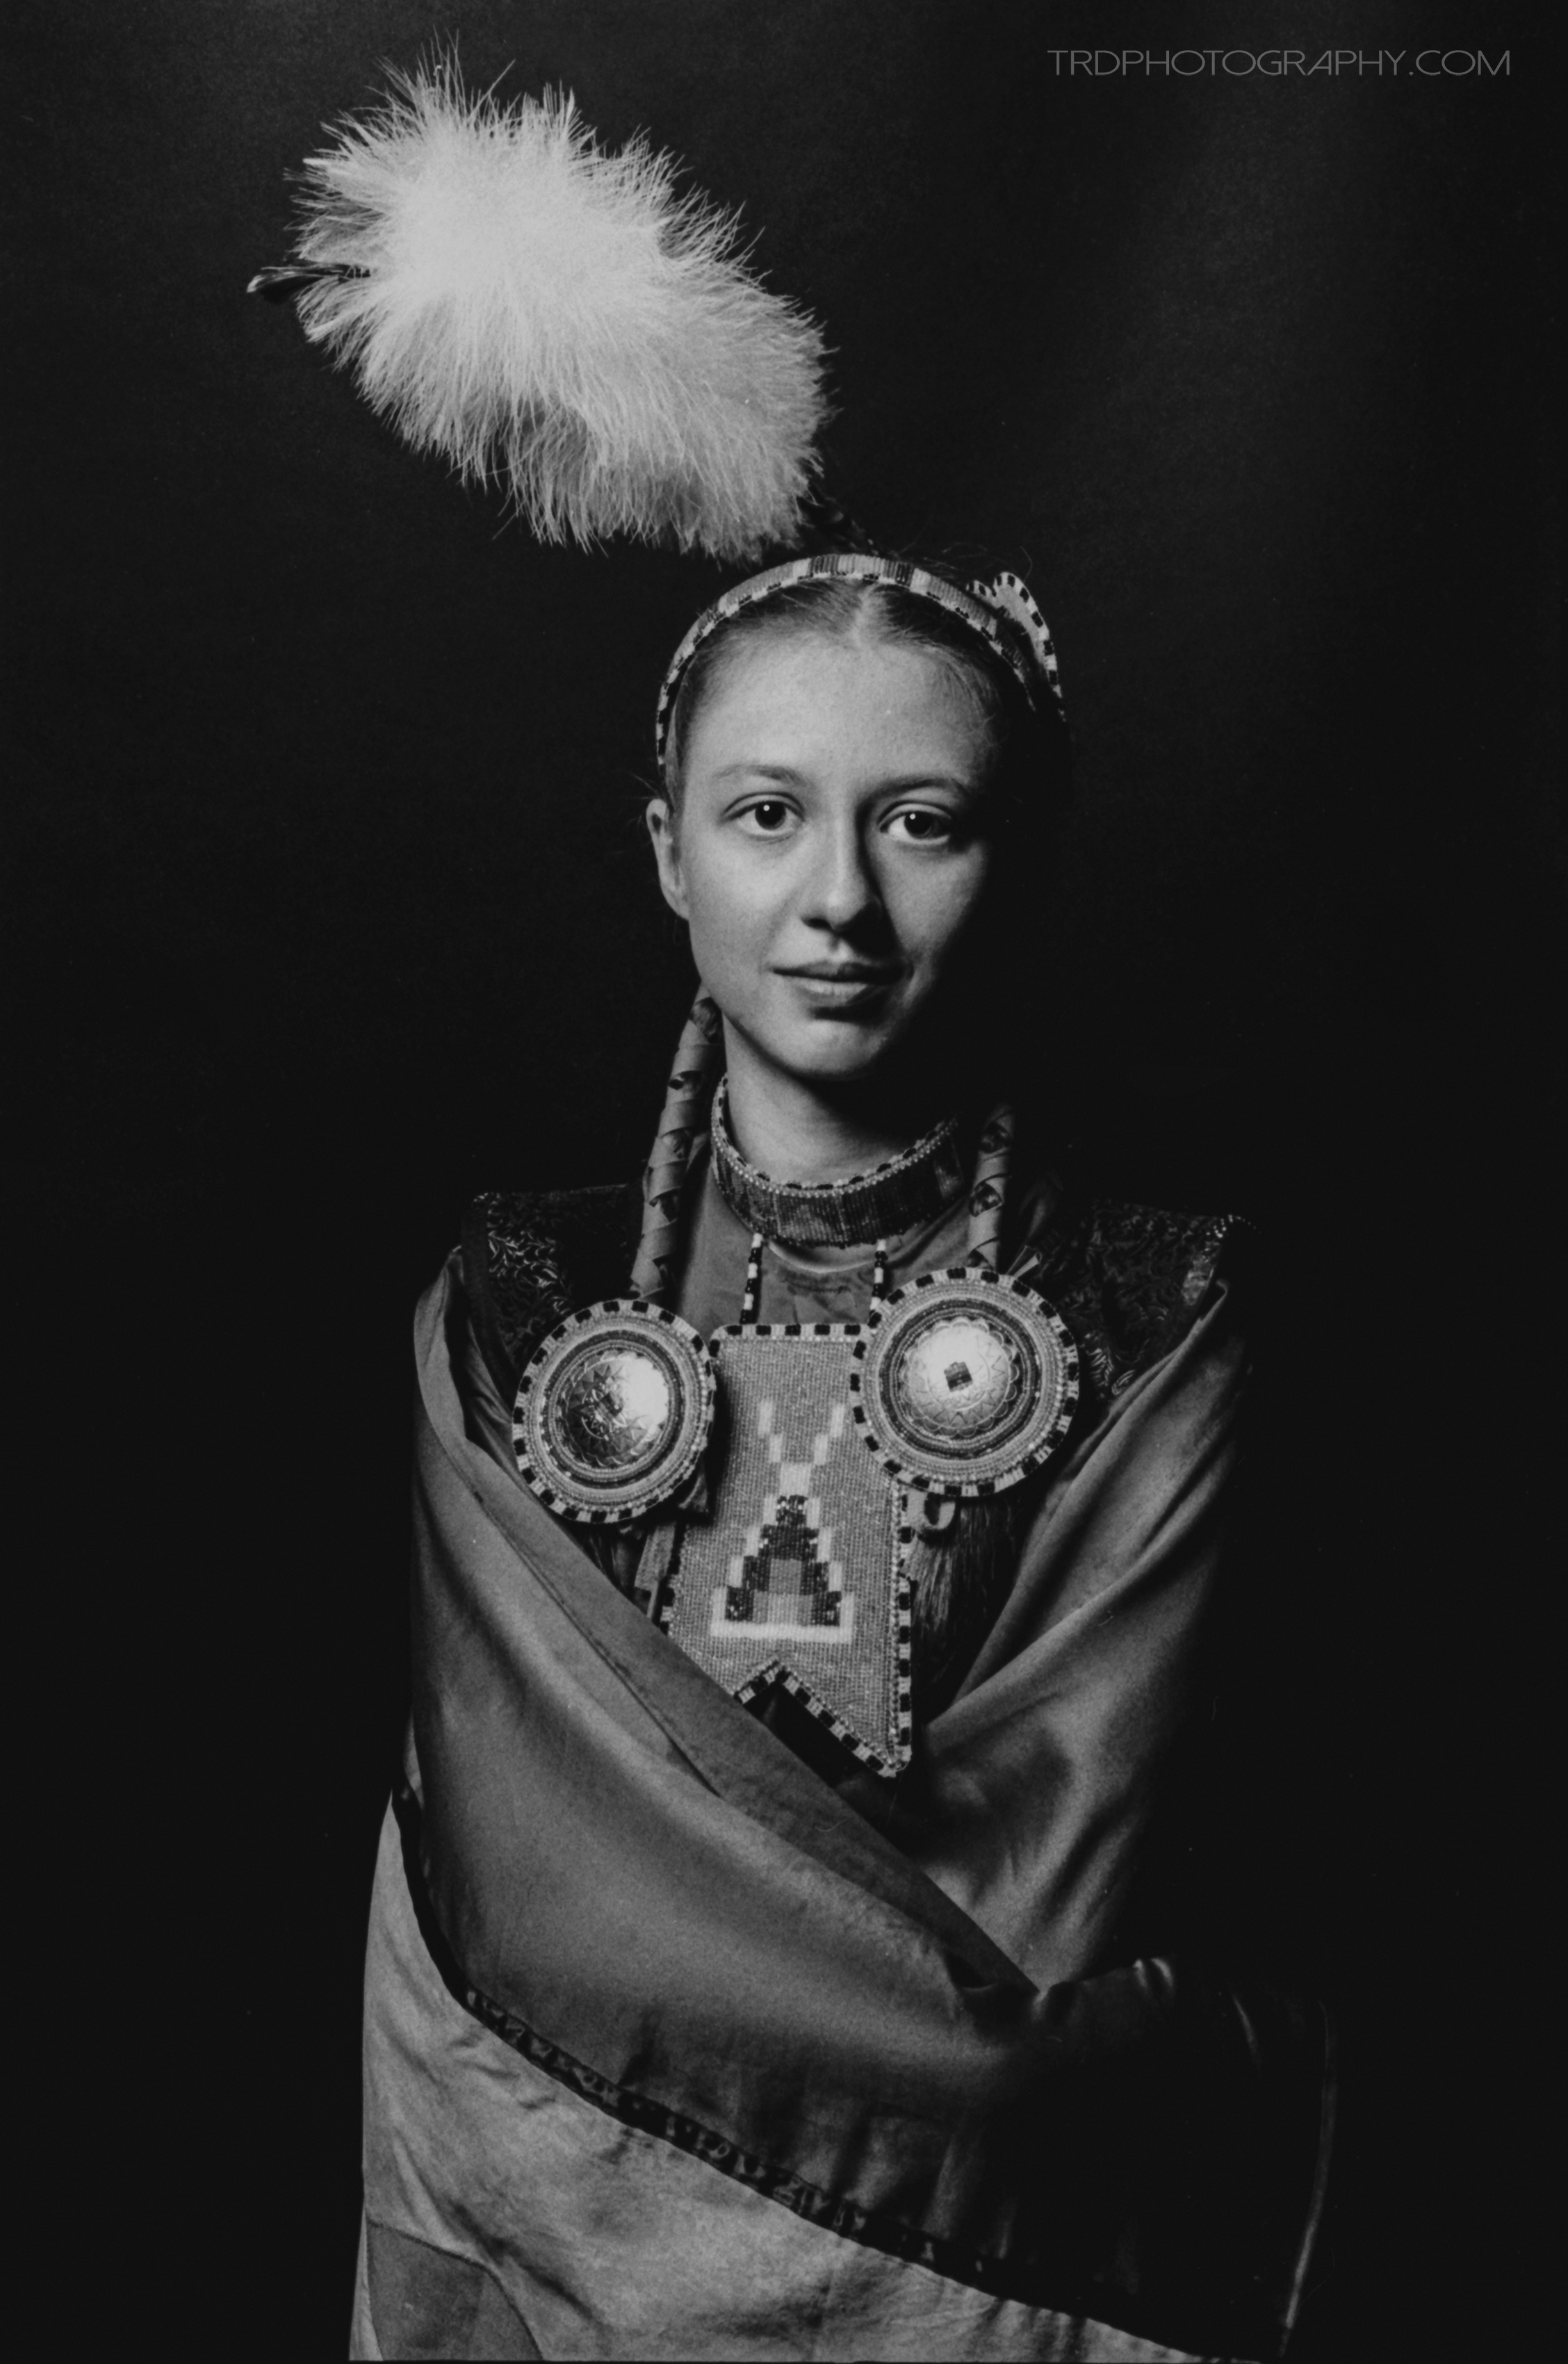 Teah - Native American Portrait Series - Kodak Tri X - TRD Photography